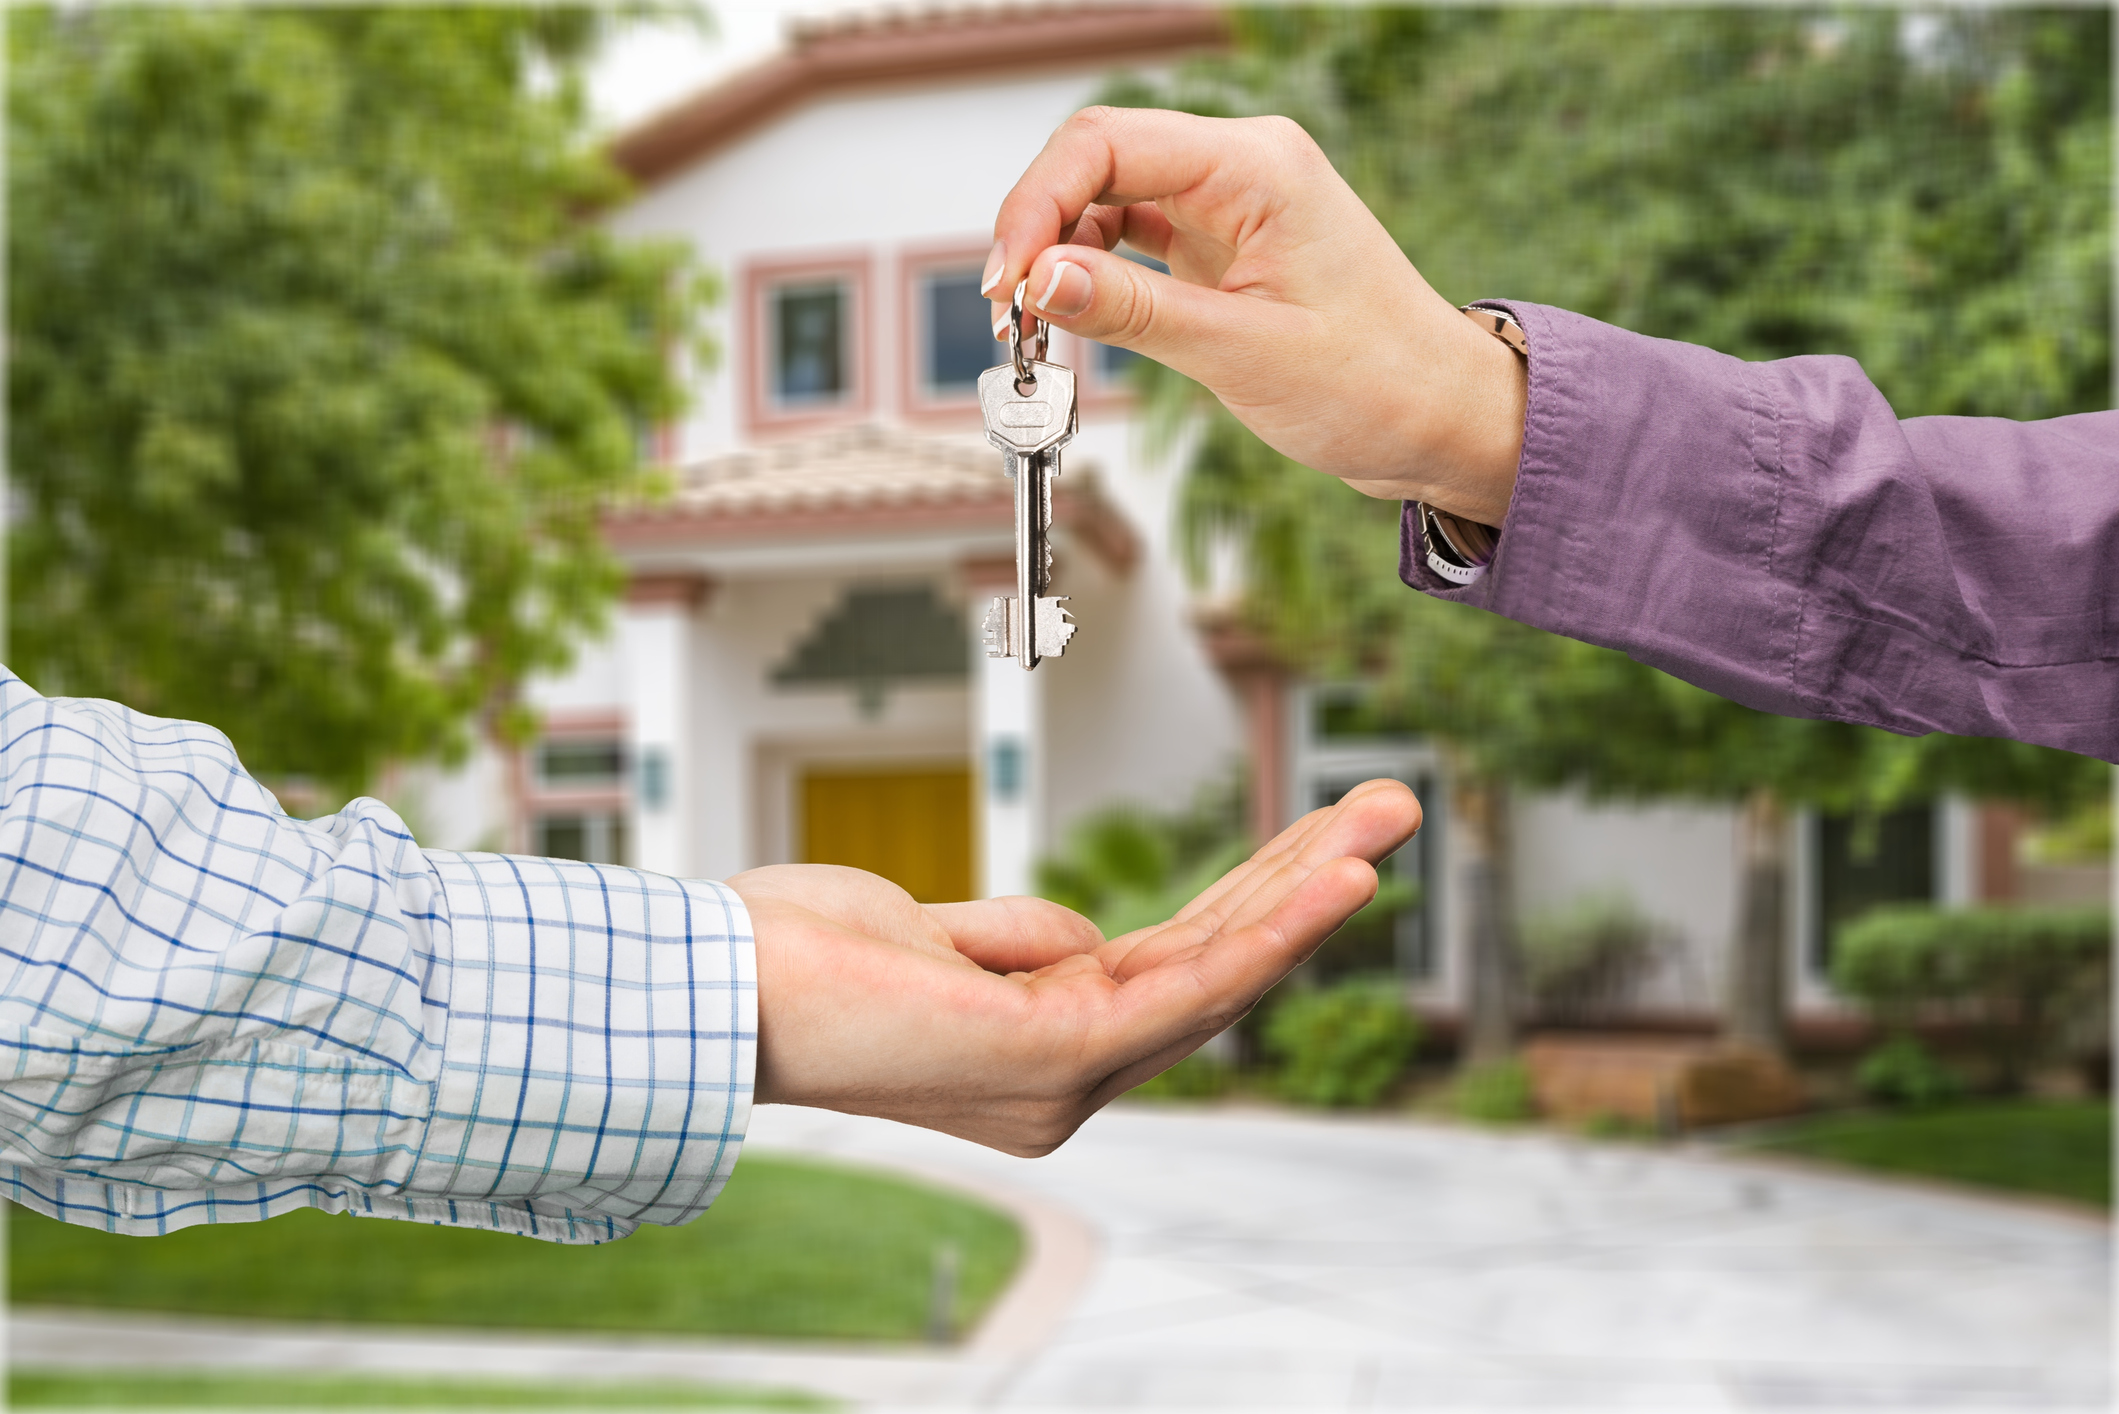 Florida Home Renting Tips: A Guide to Finding the Best Rental